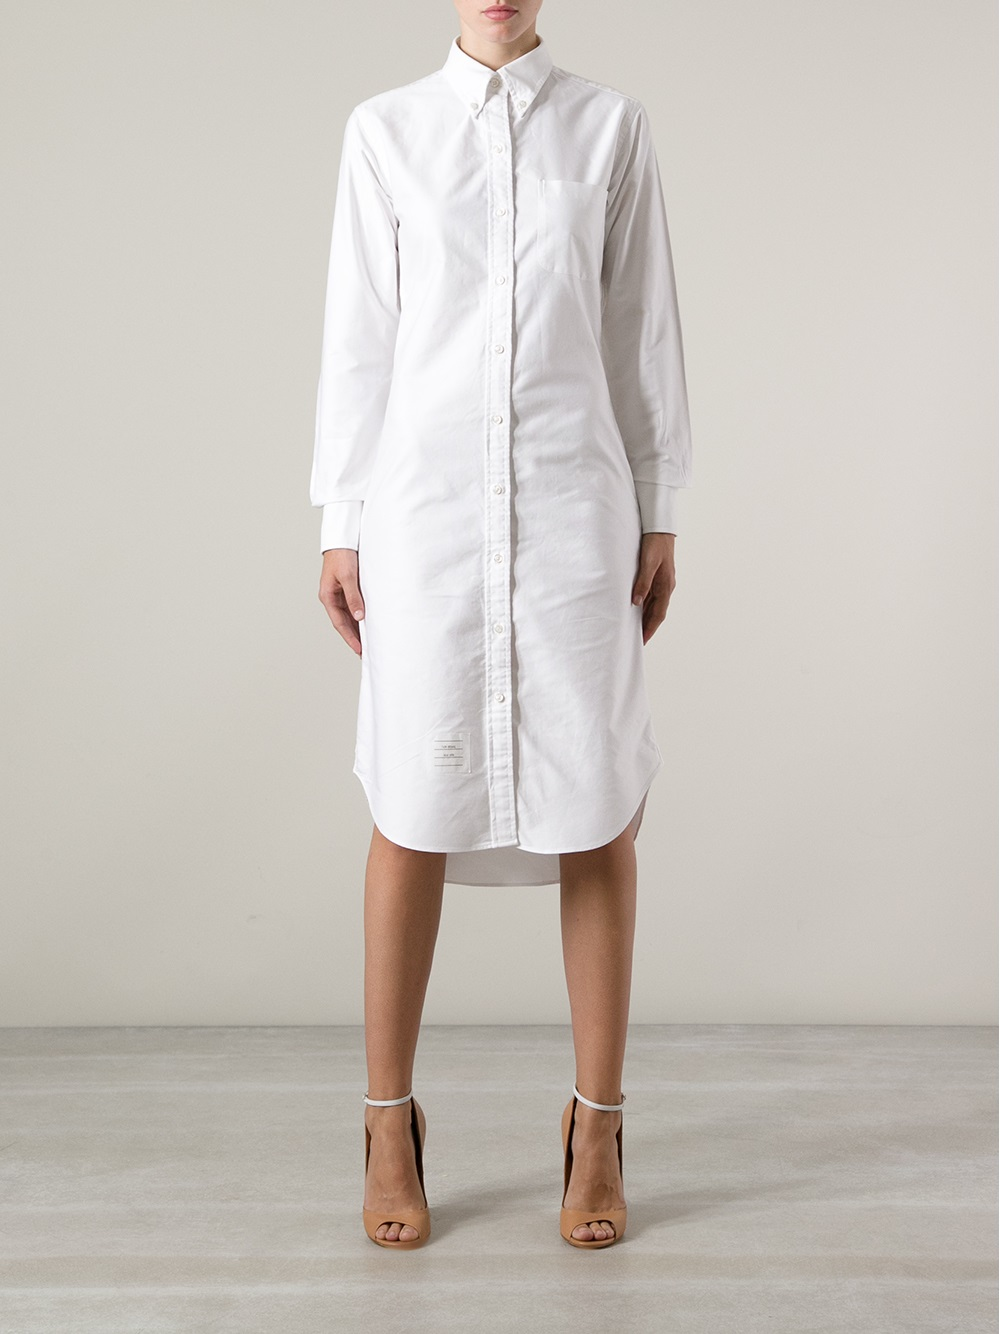 thom browne oxford shirt dress in white lyst